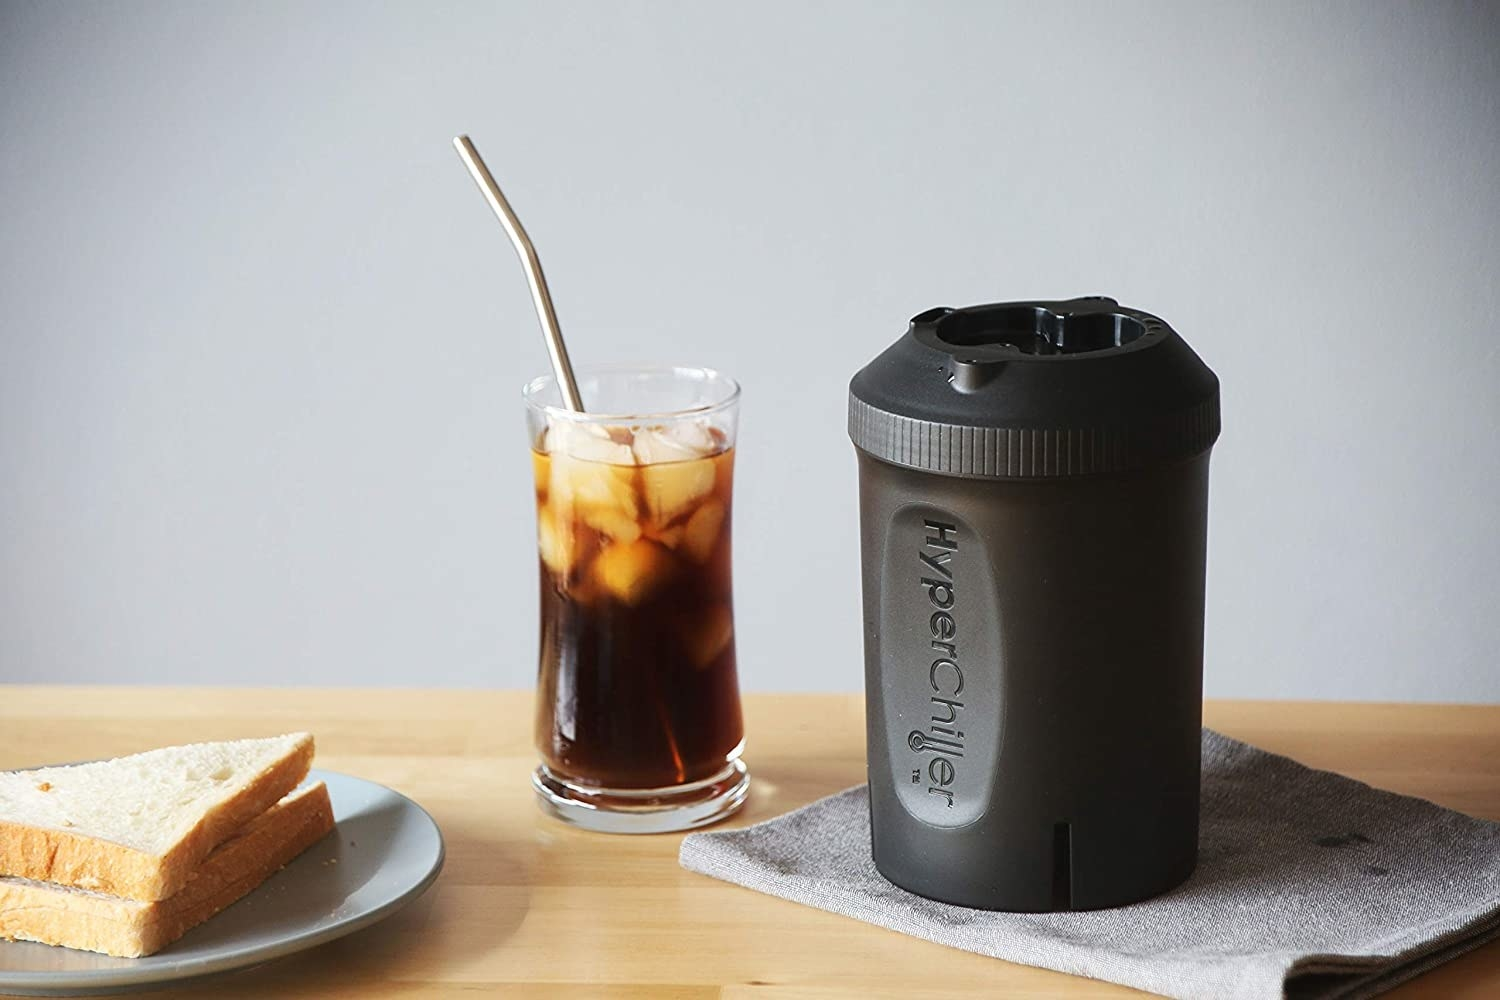 The drink chiller next to a glass of cold brew on a butcher block counter